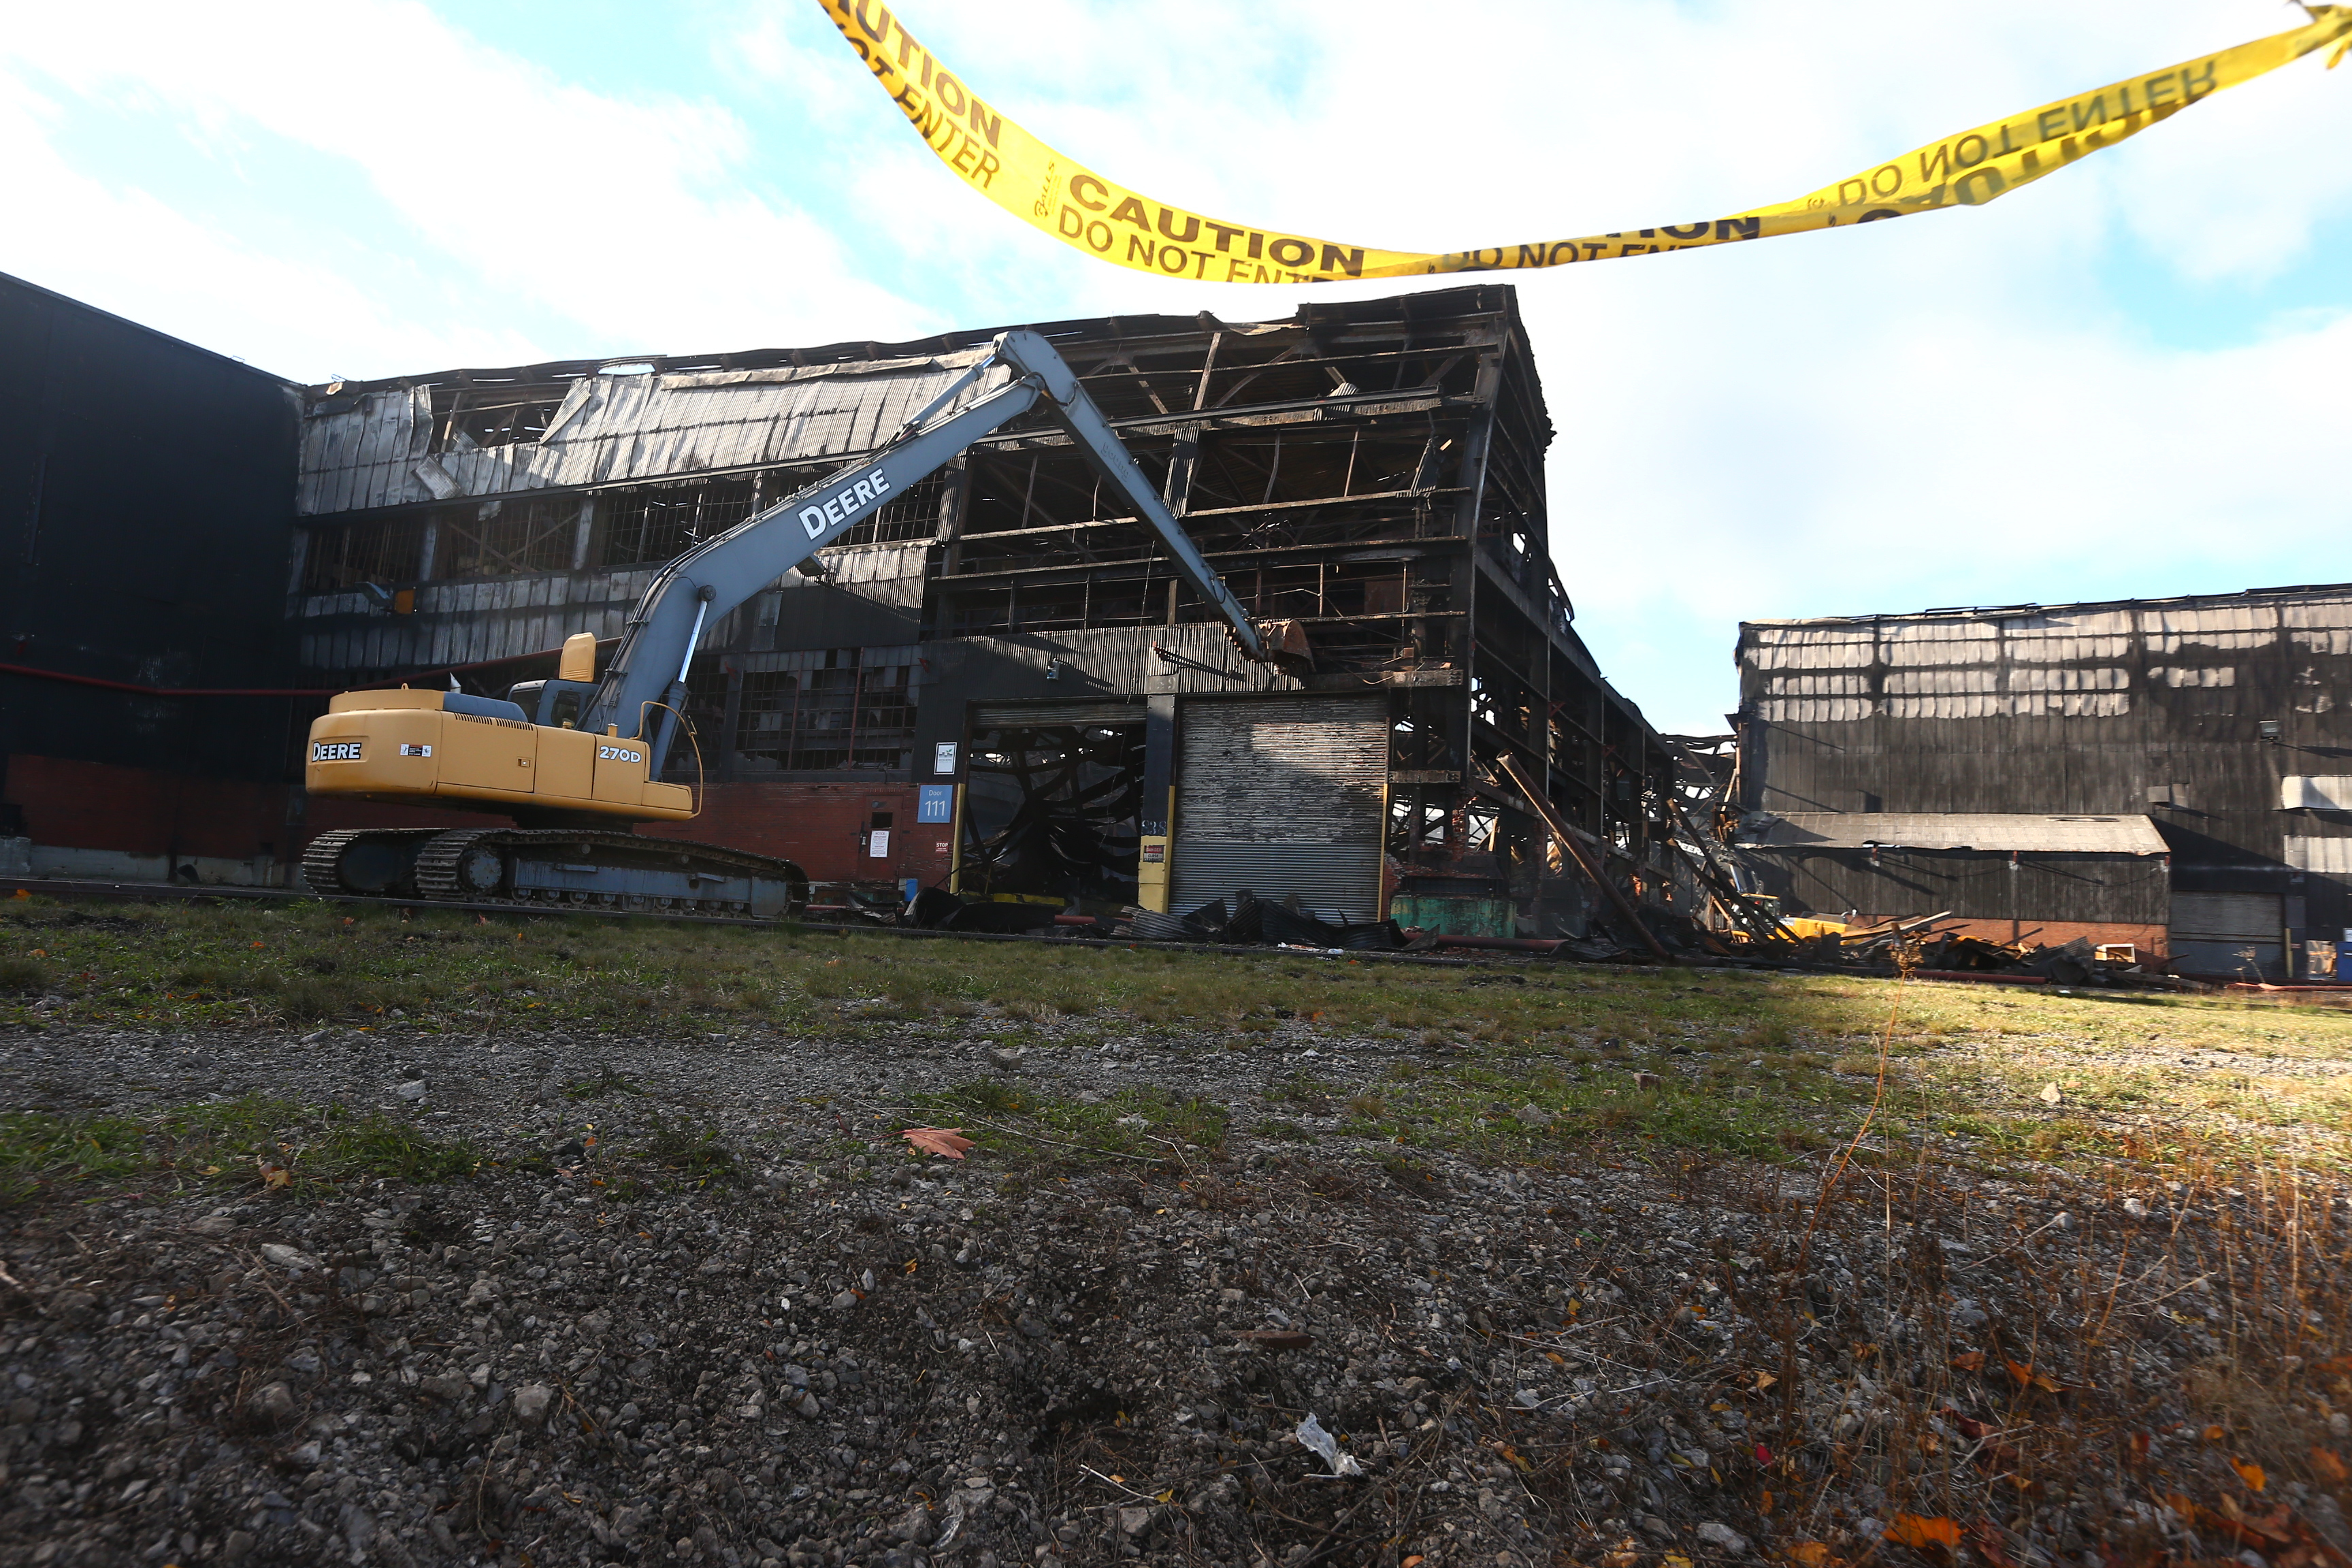 Crews work to demolish the former Bethlehem Steel building on Route 5 after a fire ripped through the building on Friday, Nov. 11, 2016. (John Hickey/Buffalo News)